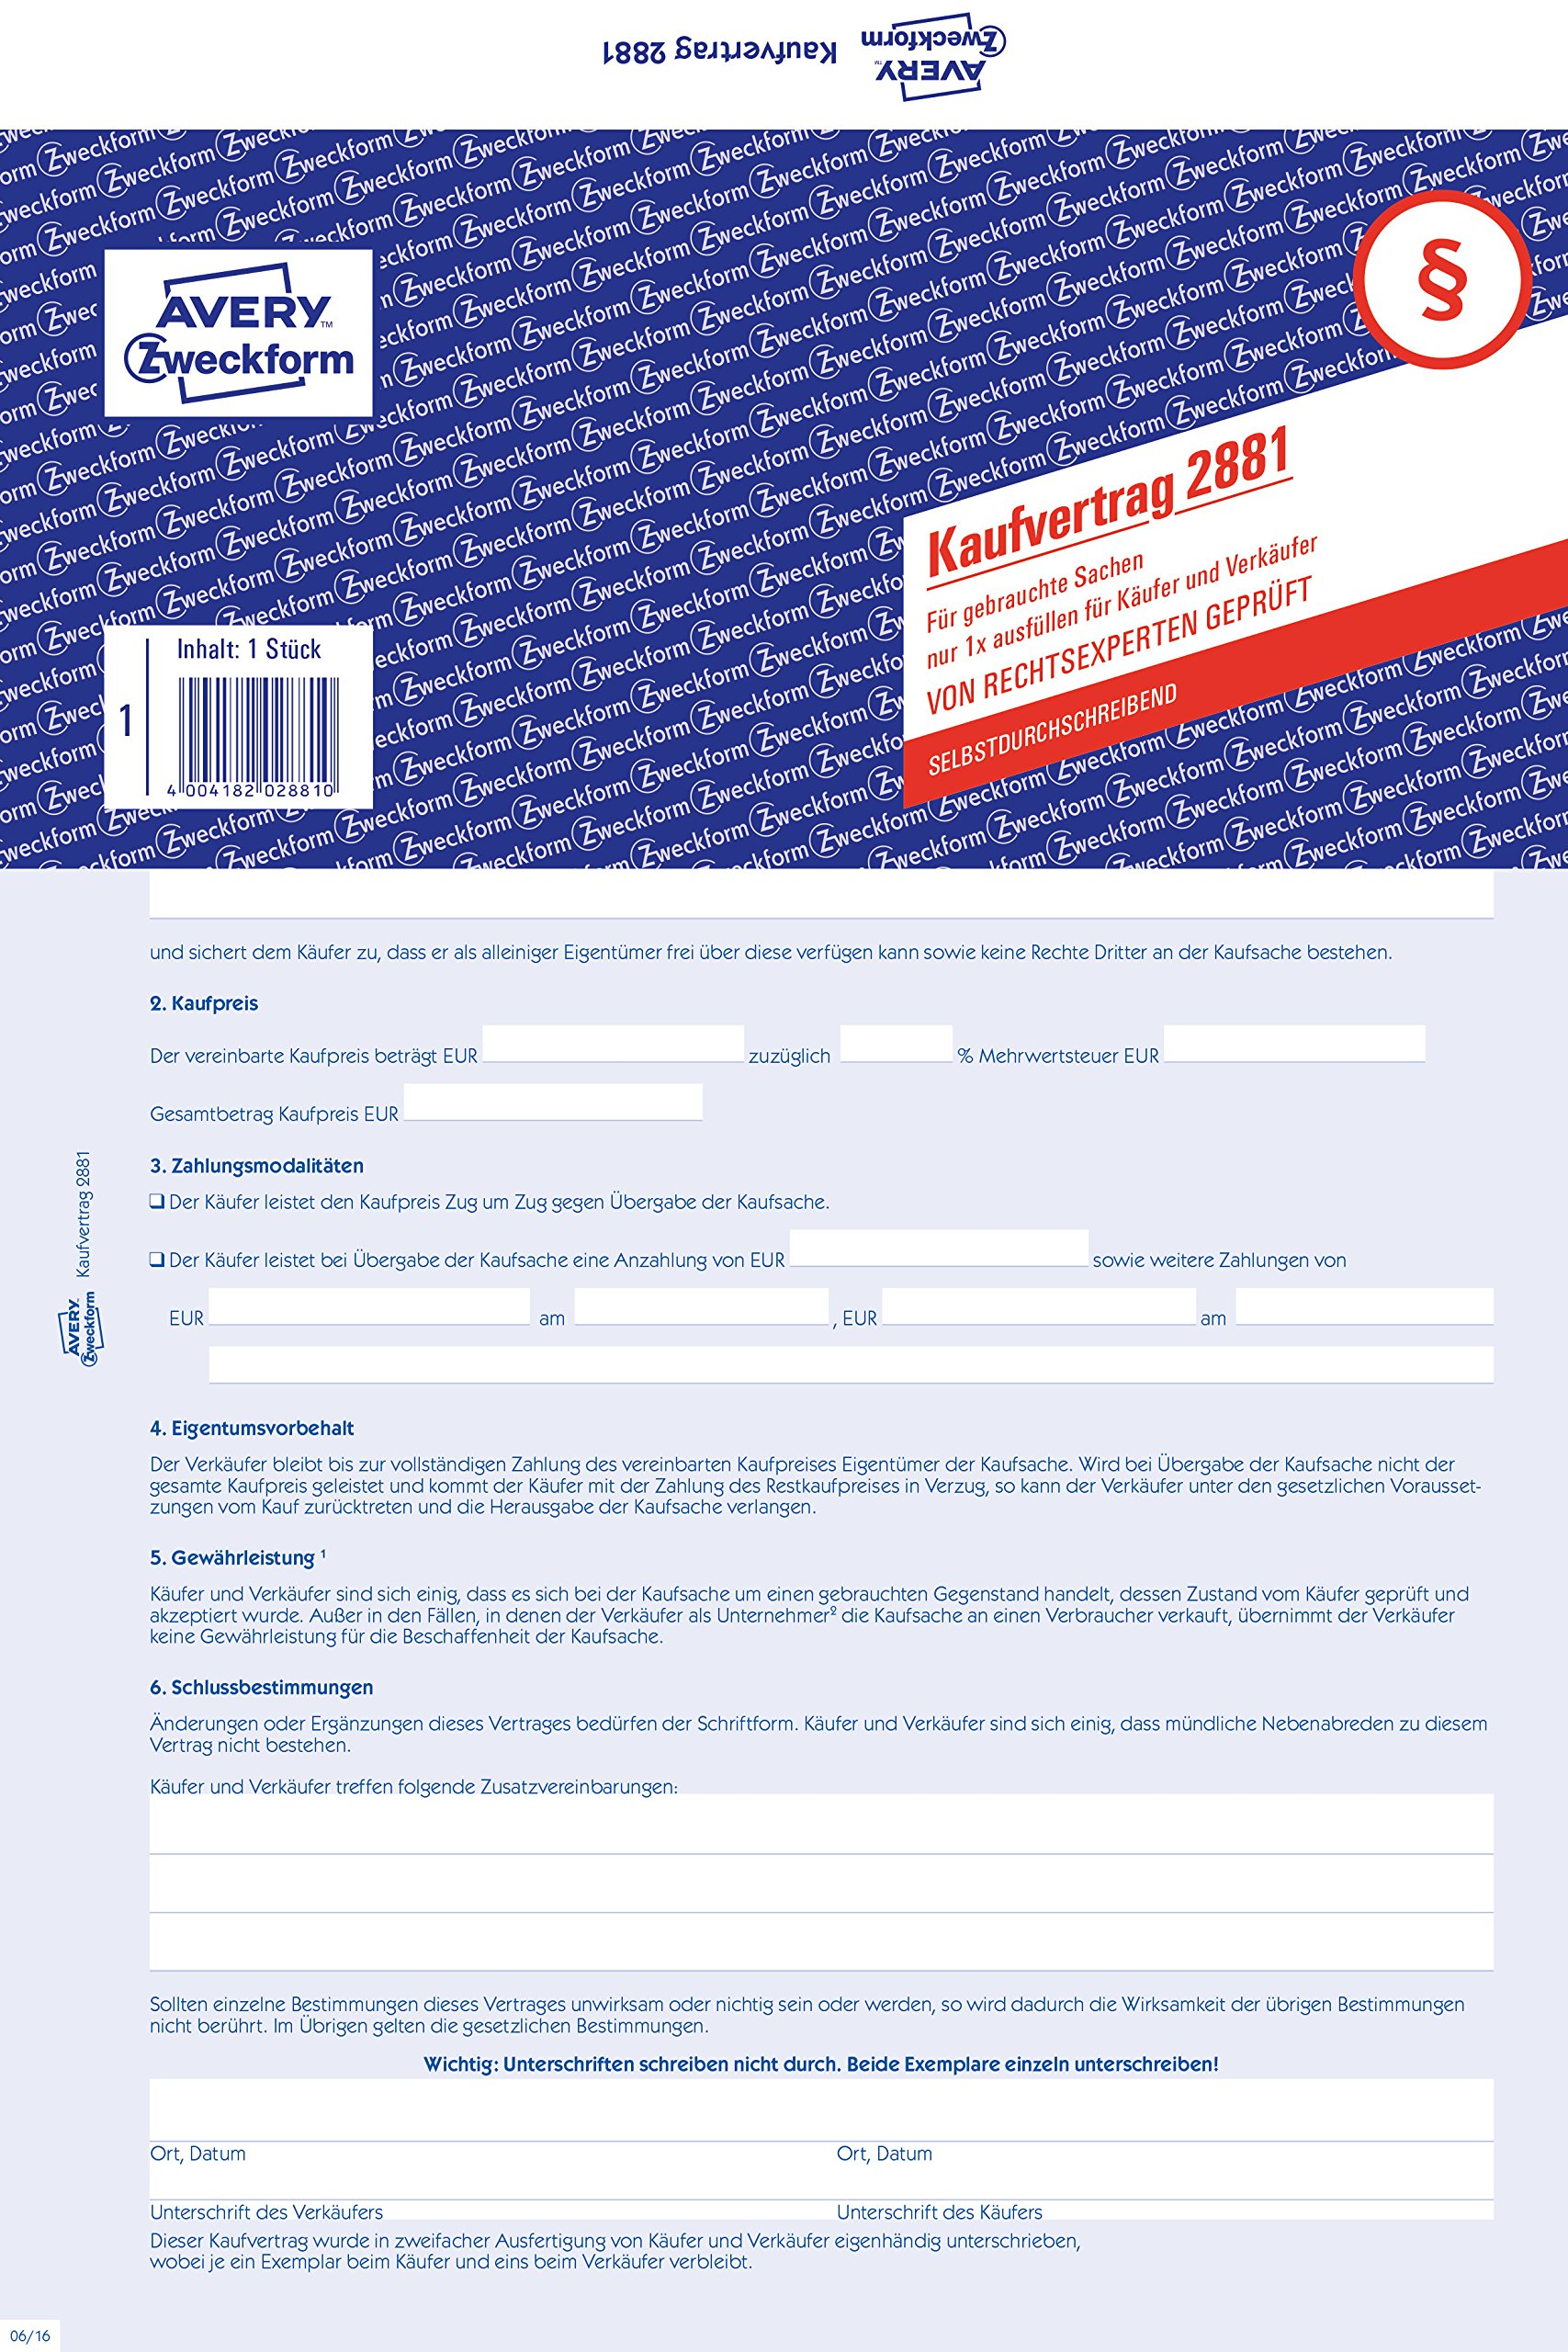 Avery Zweckform 2881Contract for Dirty Things (A4Self Copying Pack of 5)